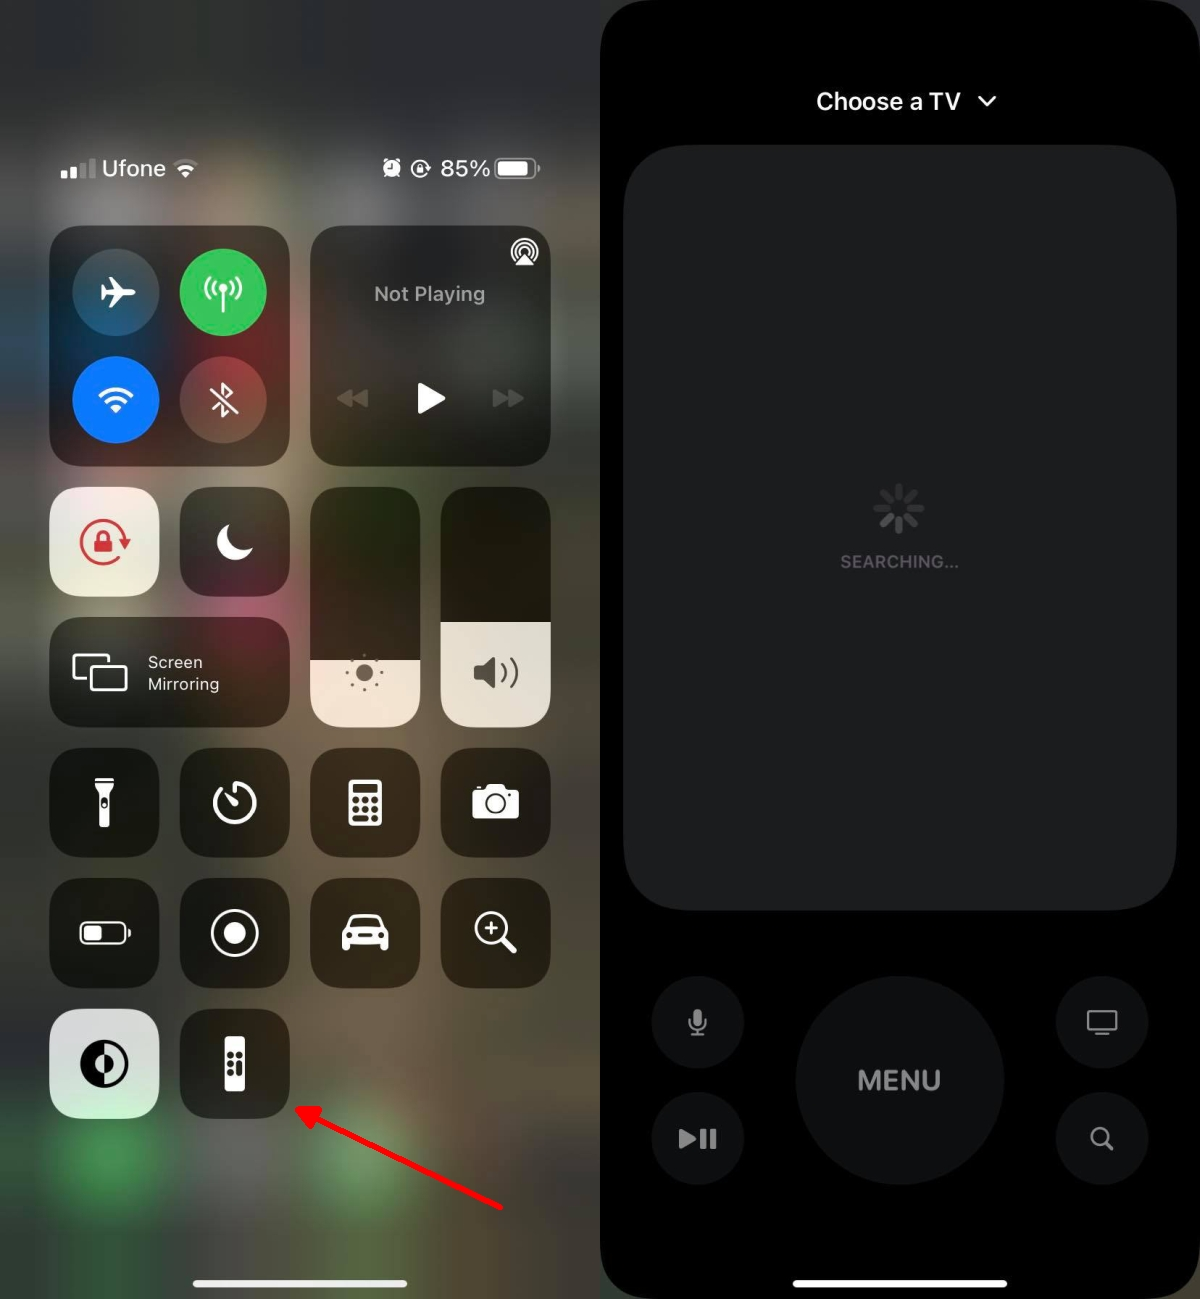 apple tv remote not working how to reset apple tv remote 2 Apple TV Remote Not Working: How to Reset Apple TV Remote?